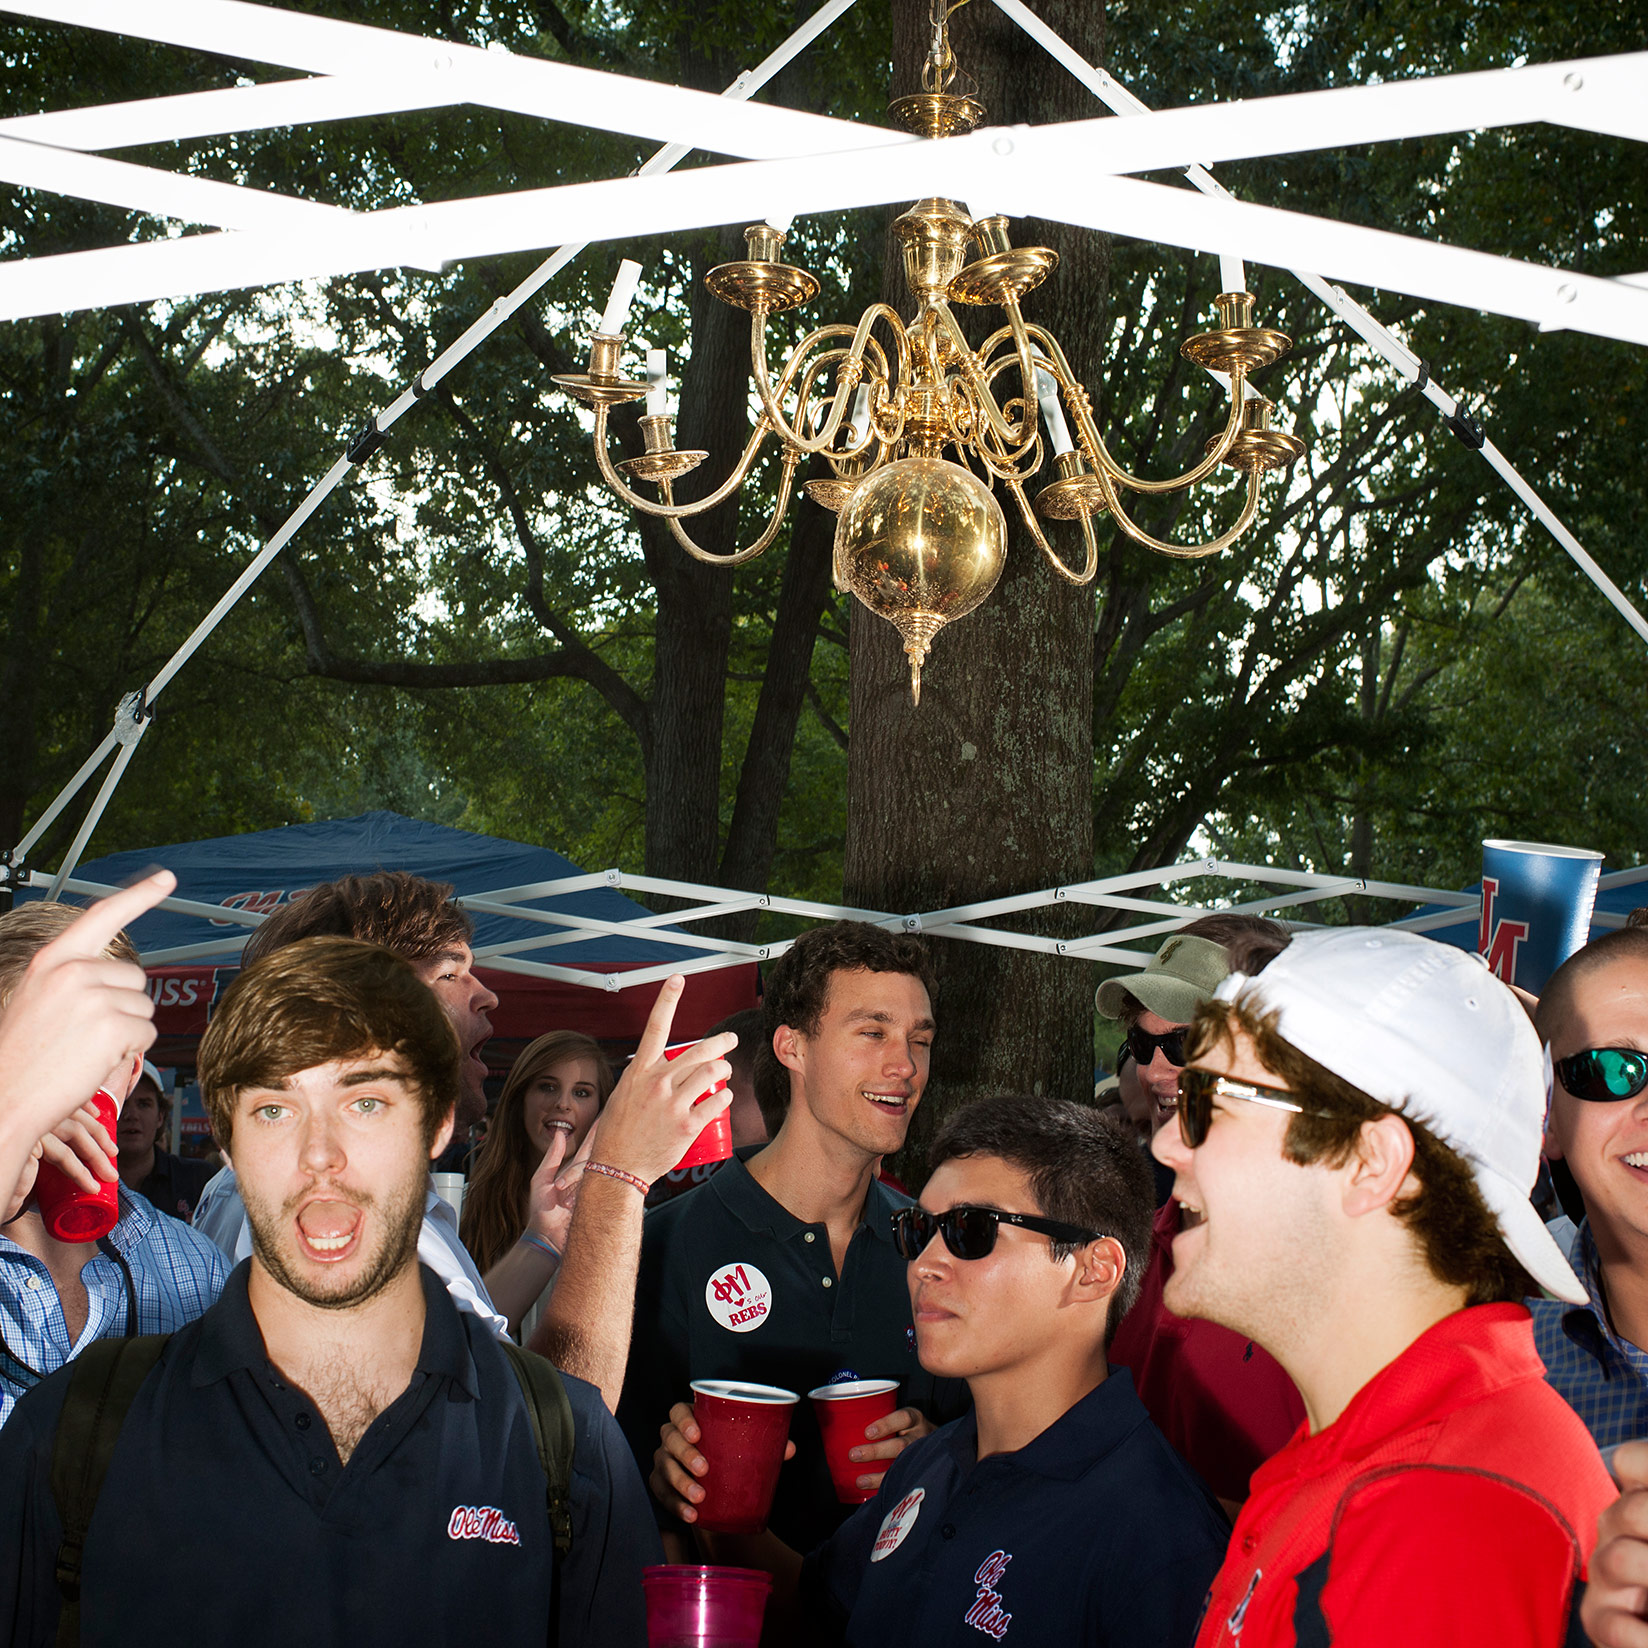 Ole miss fans how many of you have upgraded your tailgate image httpapncdnphoto20130816ncfolemisschandalierg arubaitofo Image collections